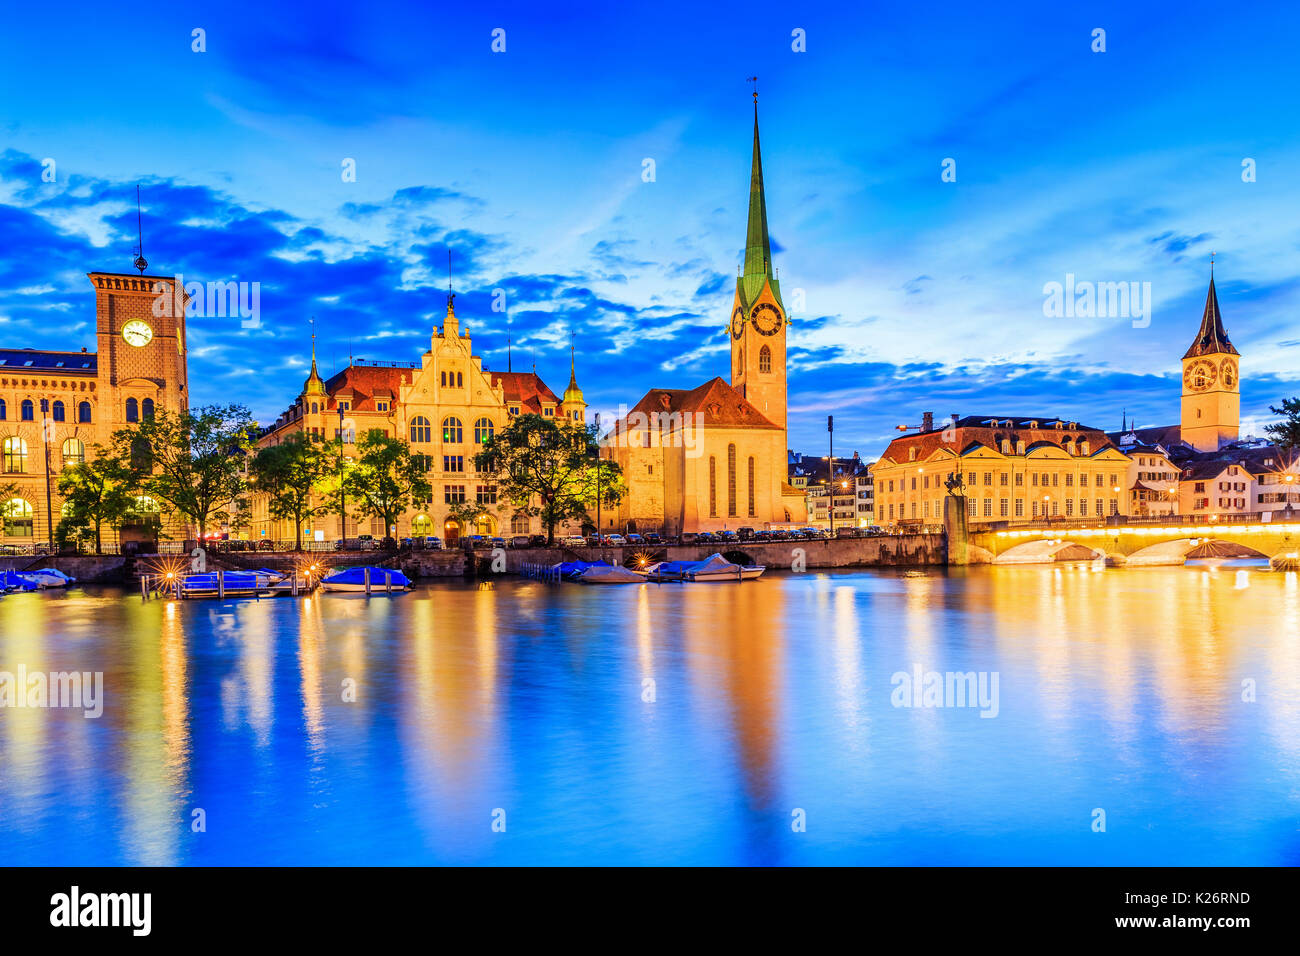 Zurich, Switzerland. View of the historic city center with famous Fraumunster Church, on the Limmat river. Stock Photo